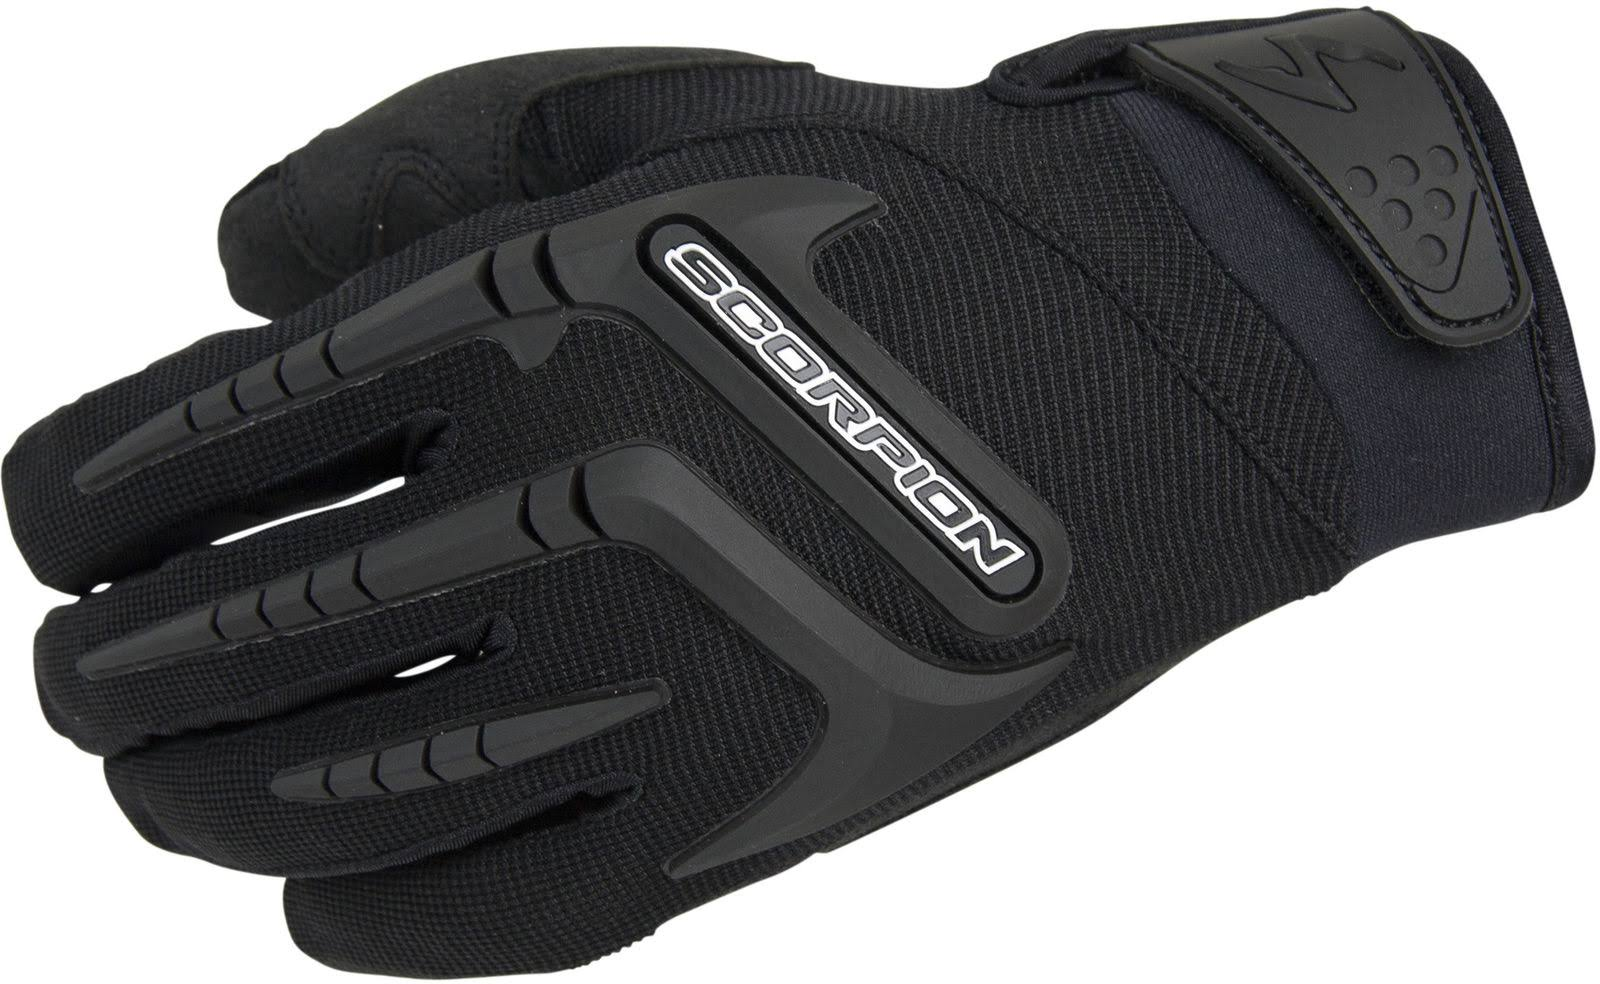 Scorpion ExoWear Skrub Women's Motorcycle Gloves - Black, Large